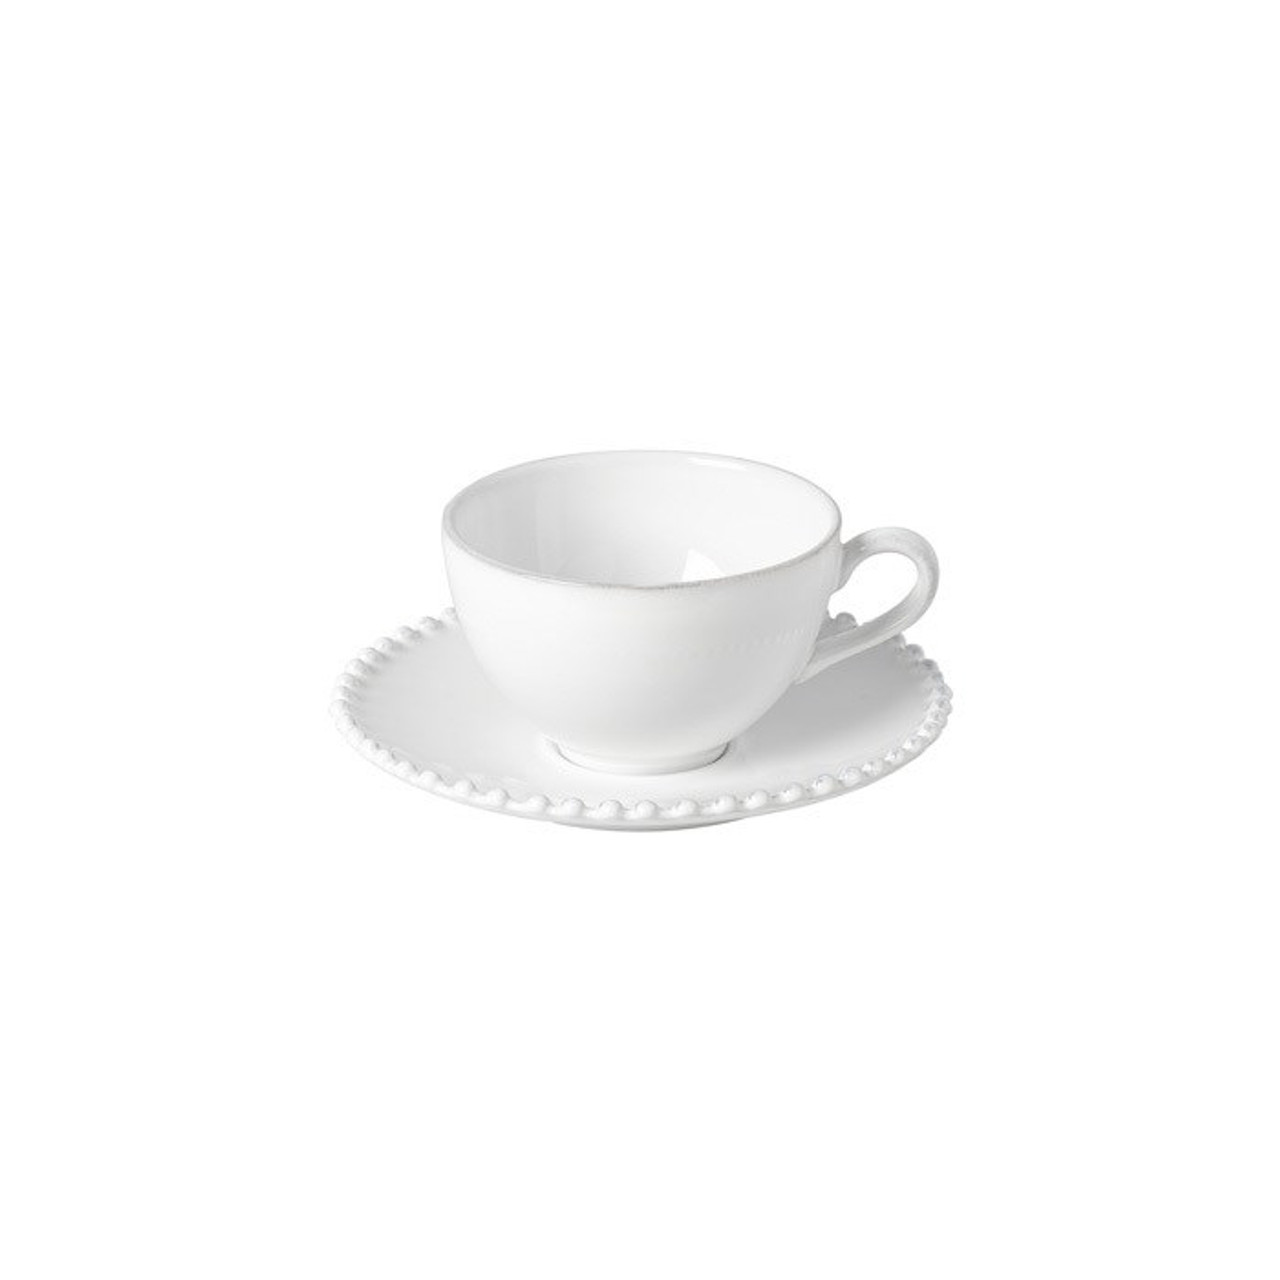 PEARL TEA CUP AND SAUCER 260ml - WHITE